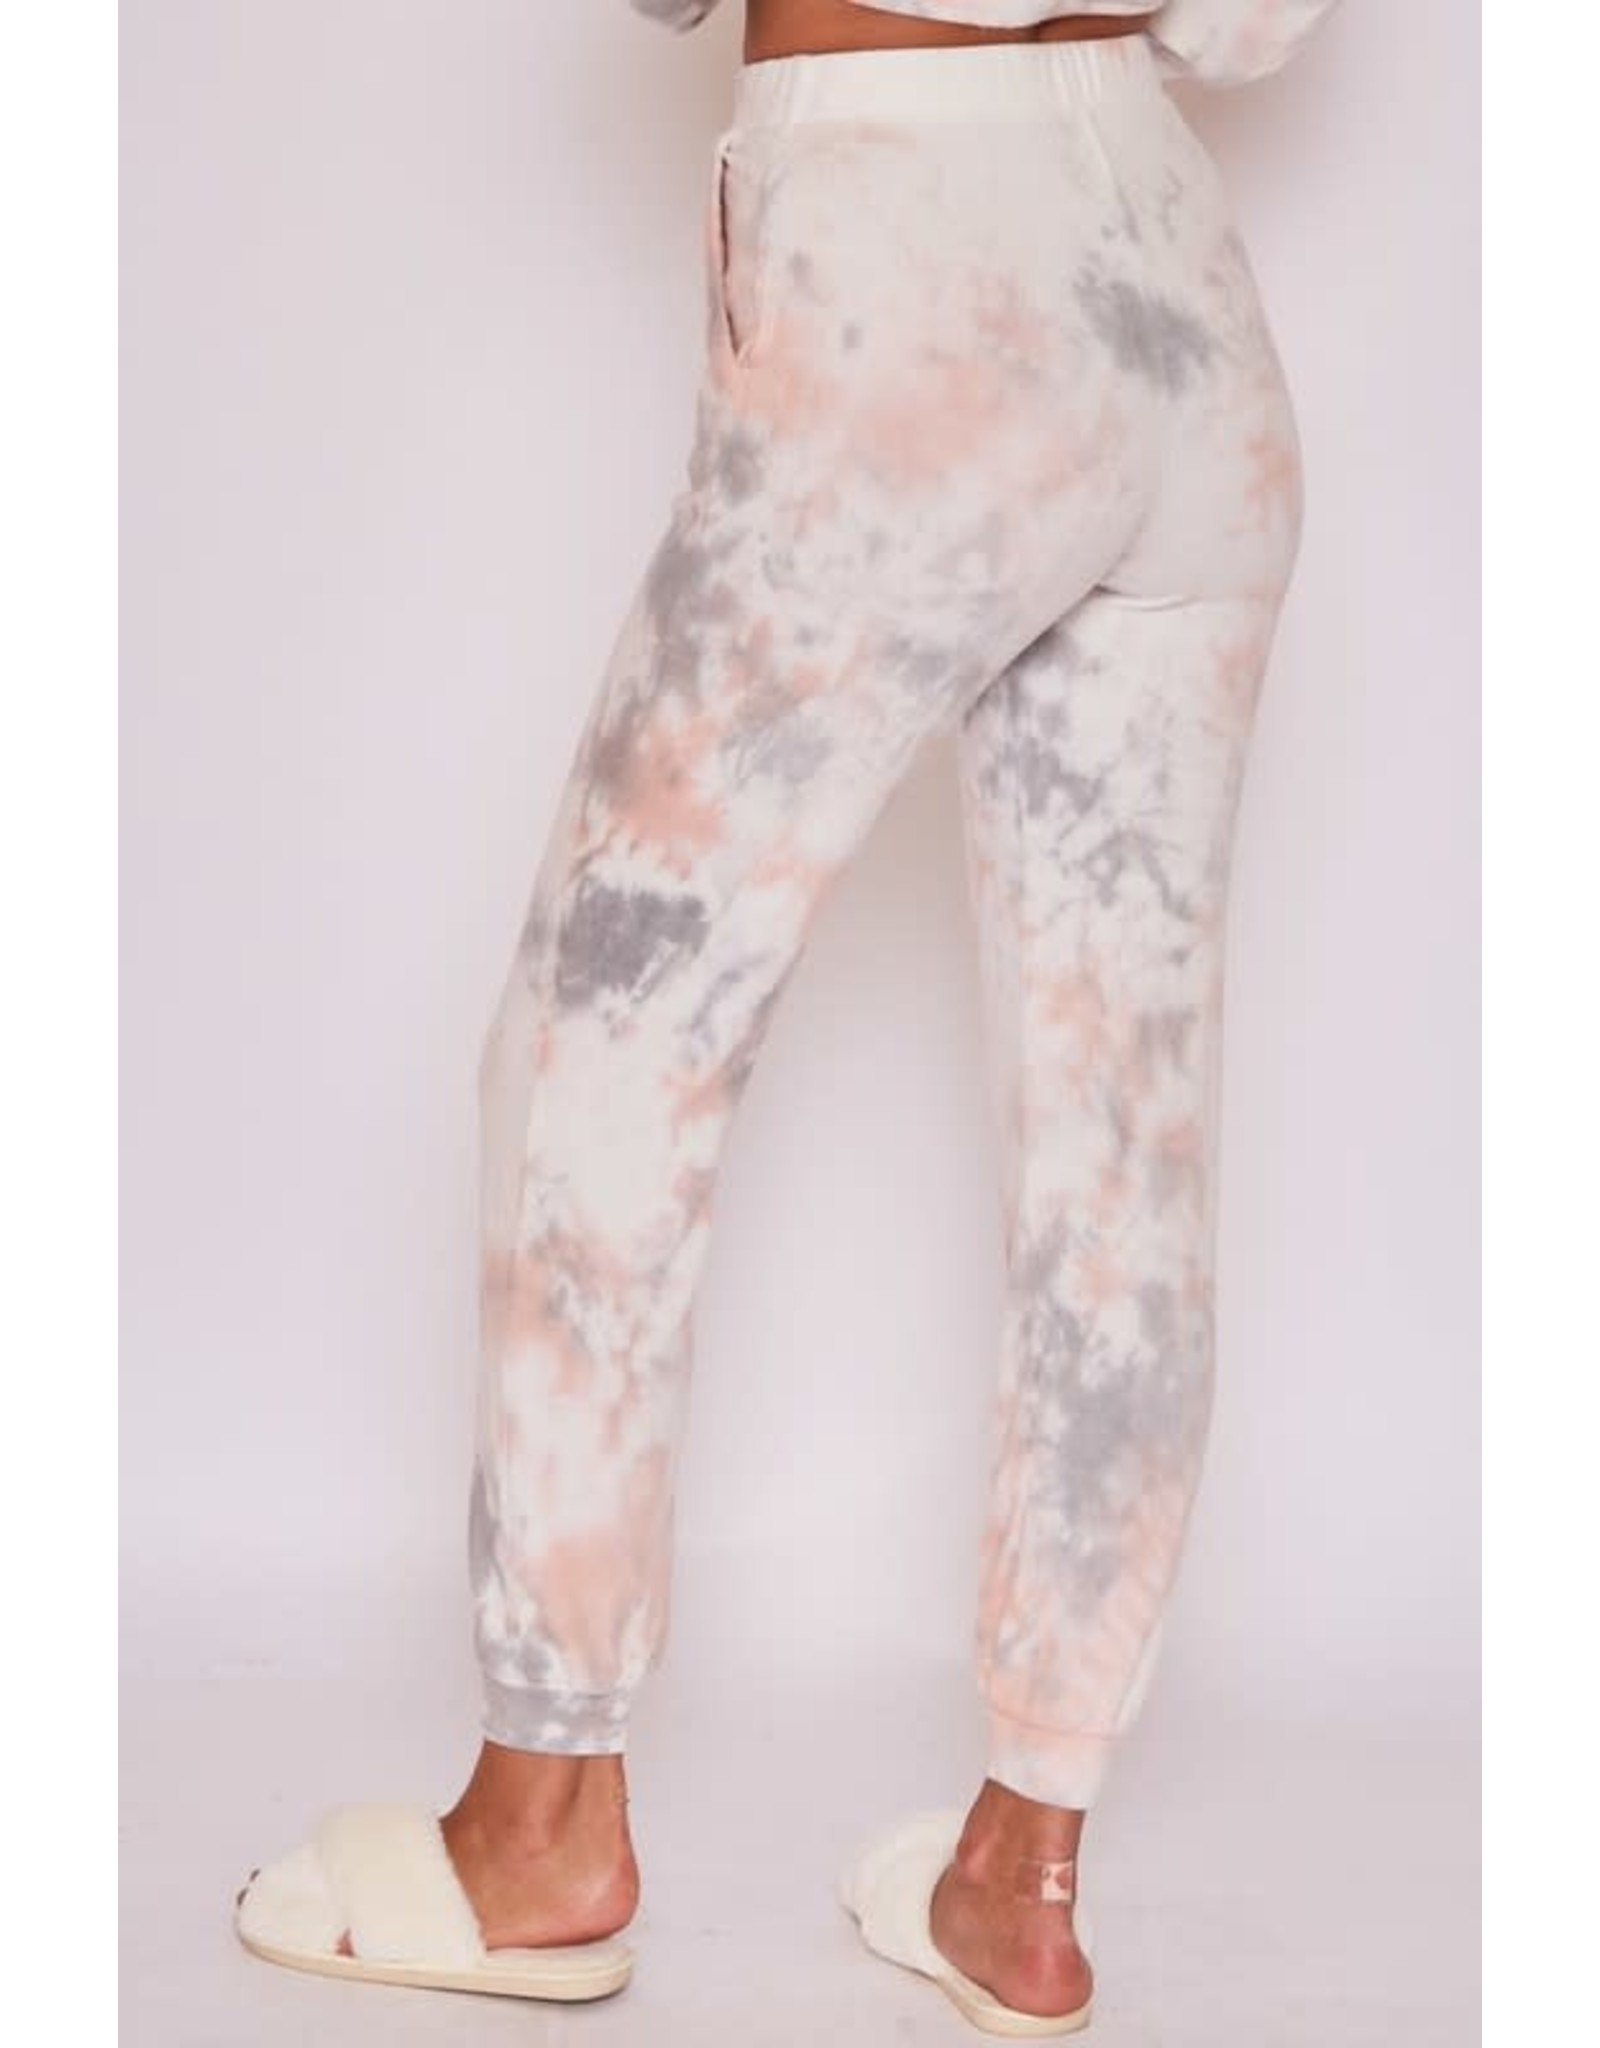 State Of Happiness Pants